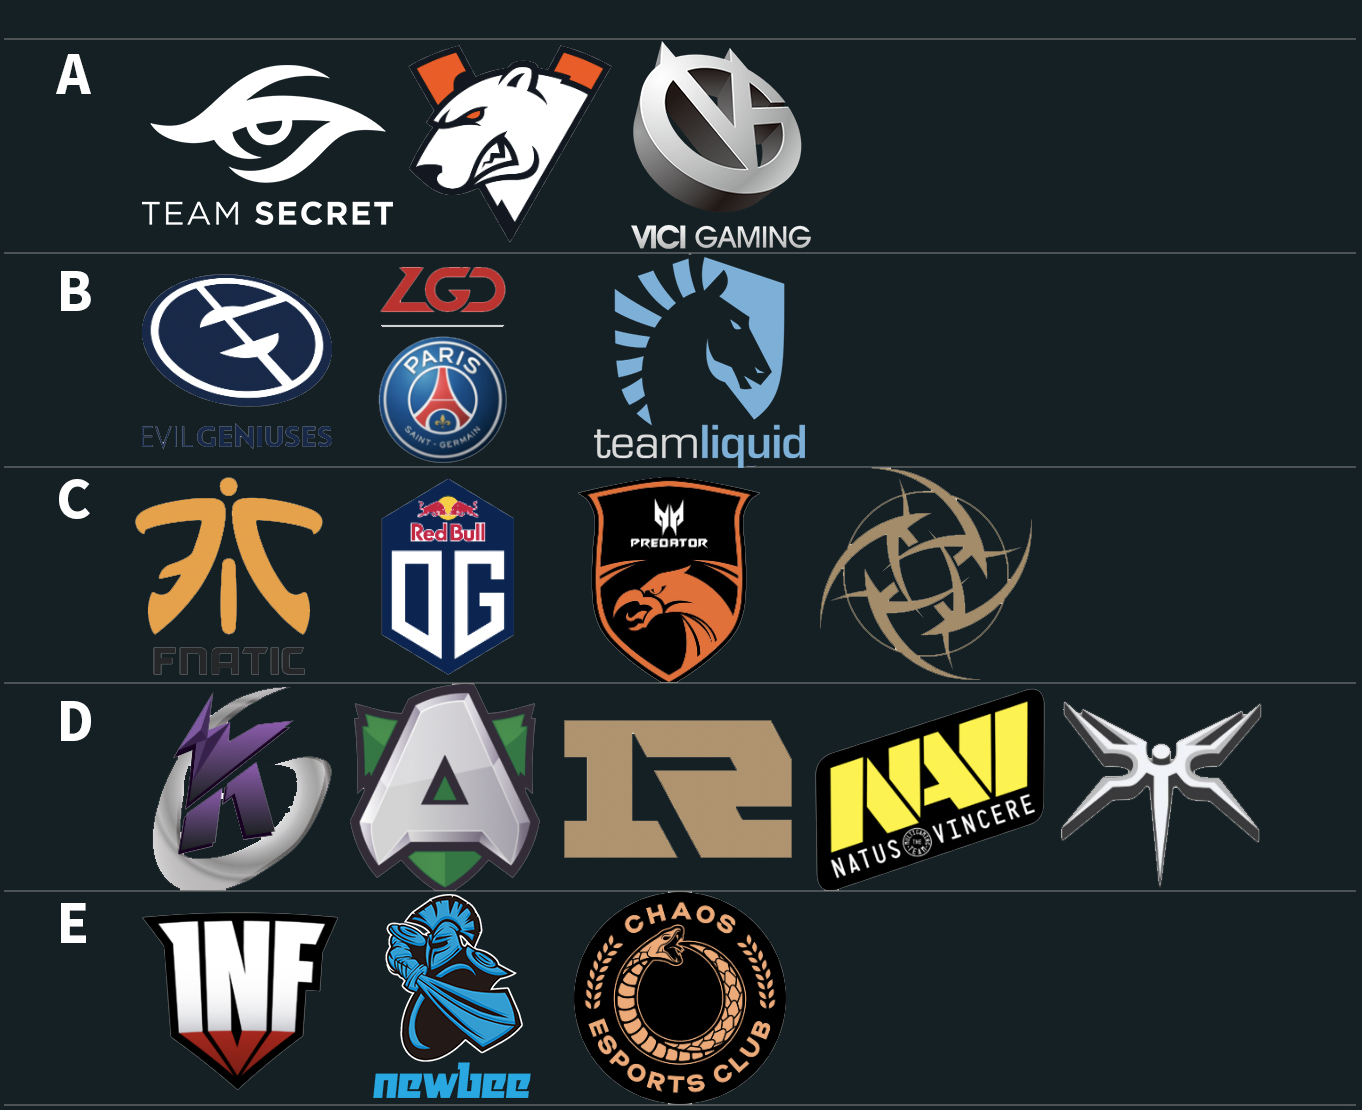 Ti9 Team rankings